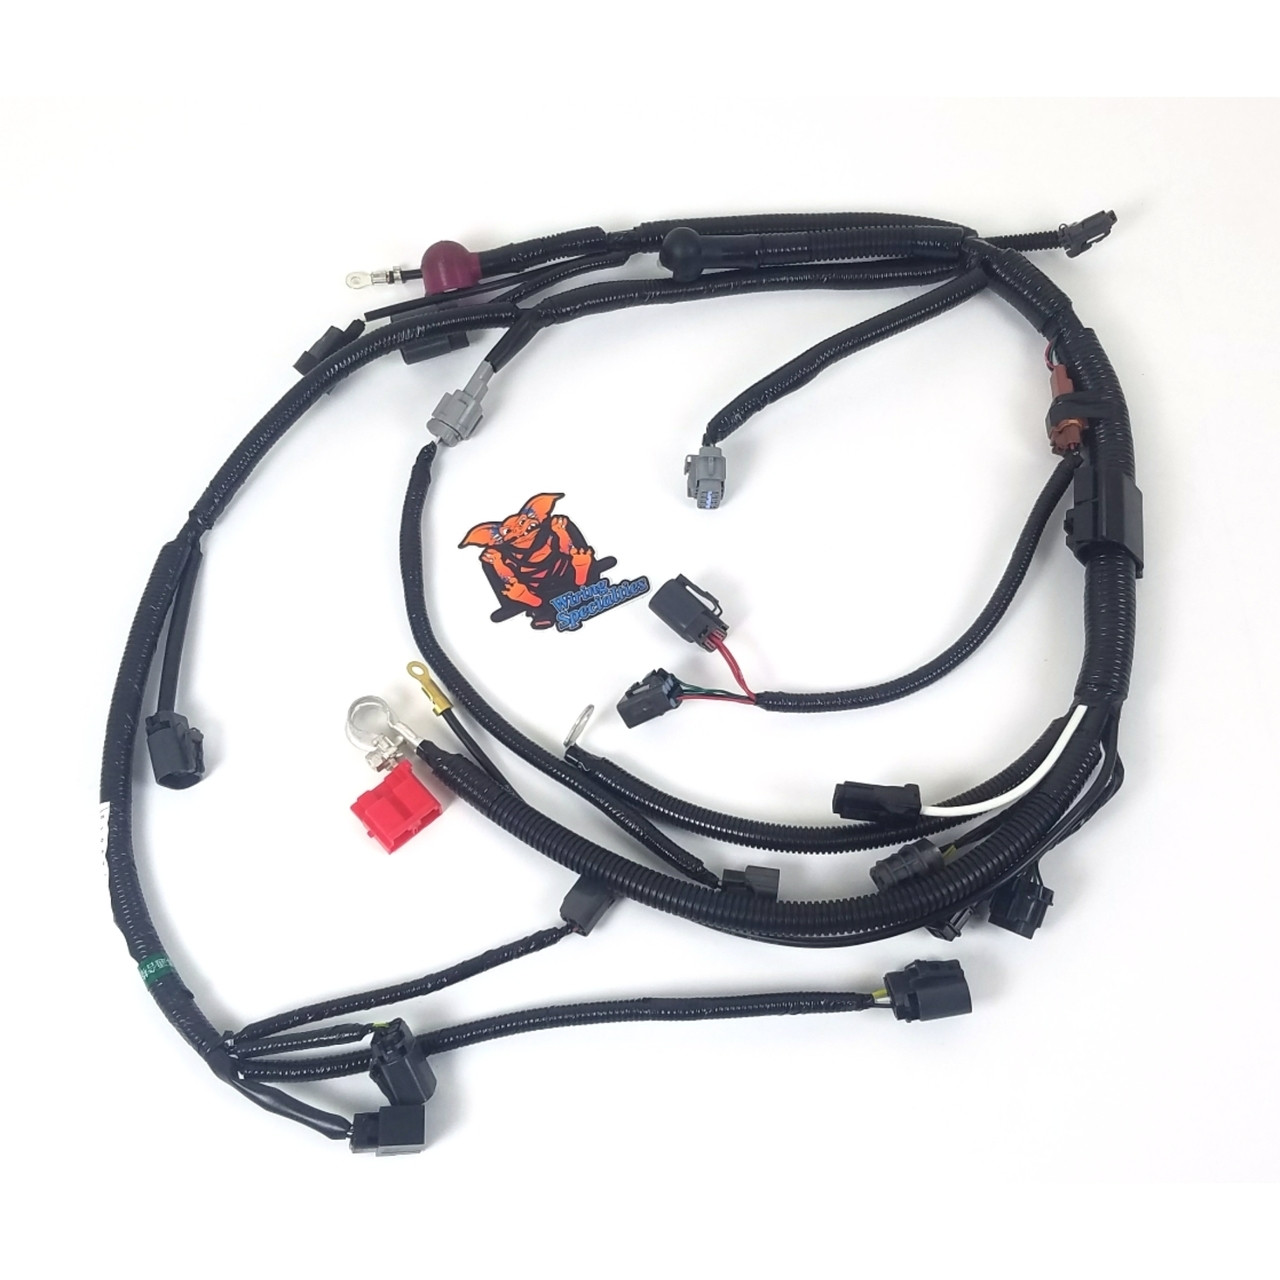 Wiring Specialties S13 Ka24de Wire Center Pulsefrequency Divider 1 Circuit Diagram Tradeoficcom S14 Lower Harness For 240sx Rh 240sxmotoring Com Front Cover Timing Marks